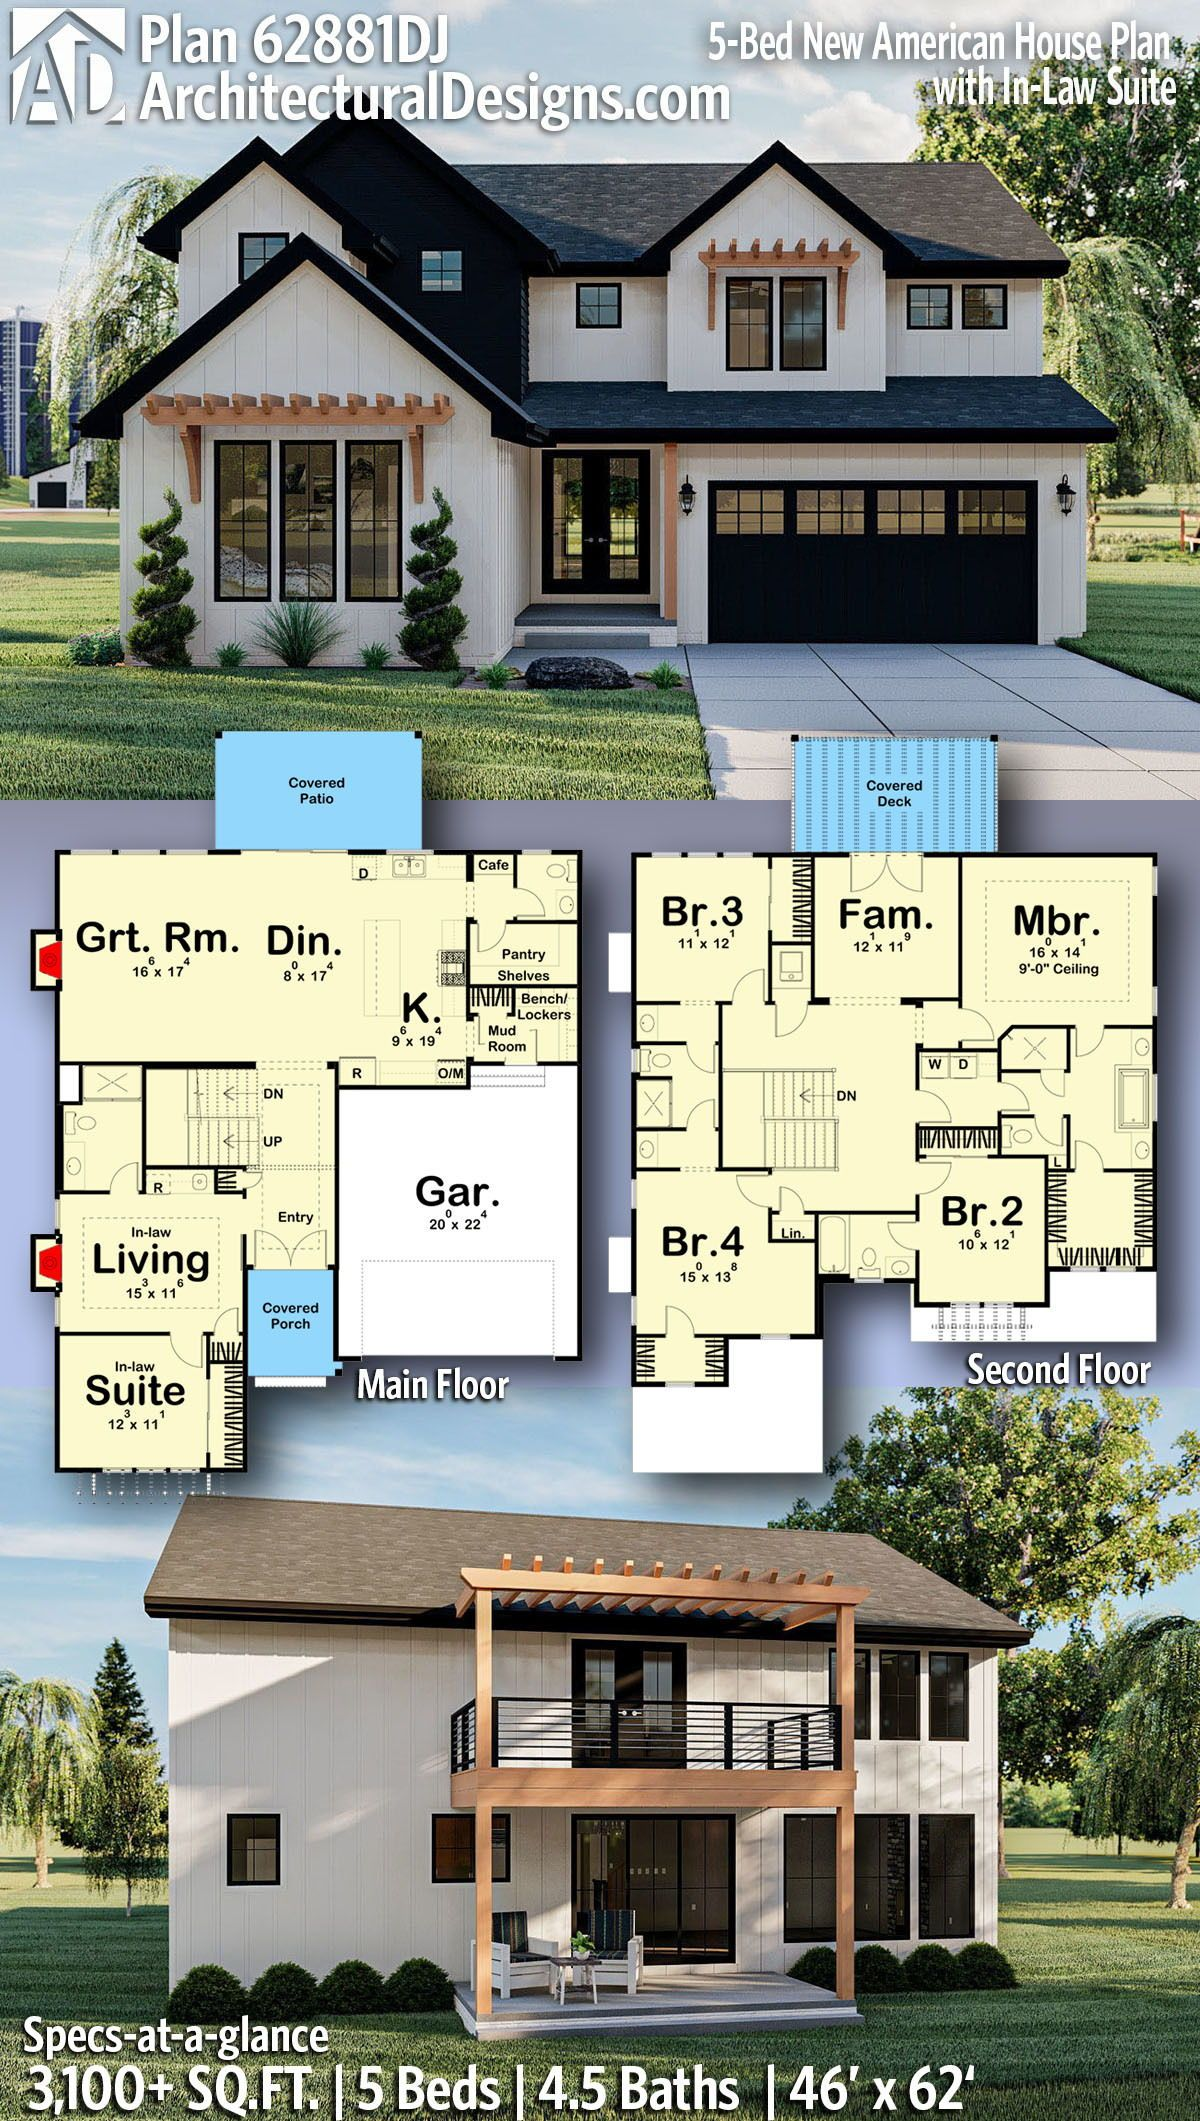 Plan 62881dj 5 Bed New American House Plan With In Law Suite Craftsman House Plans American Houses Sims House Plans